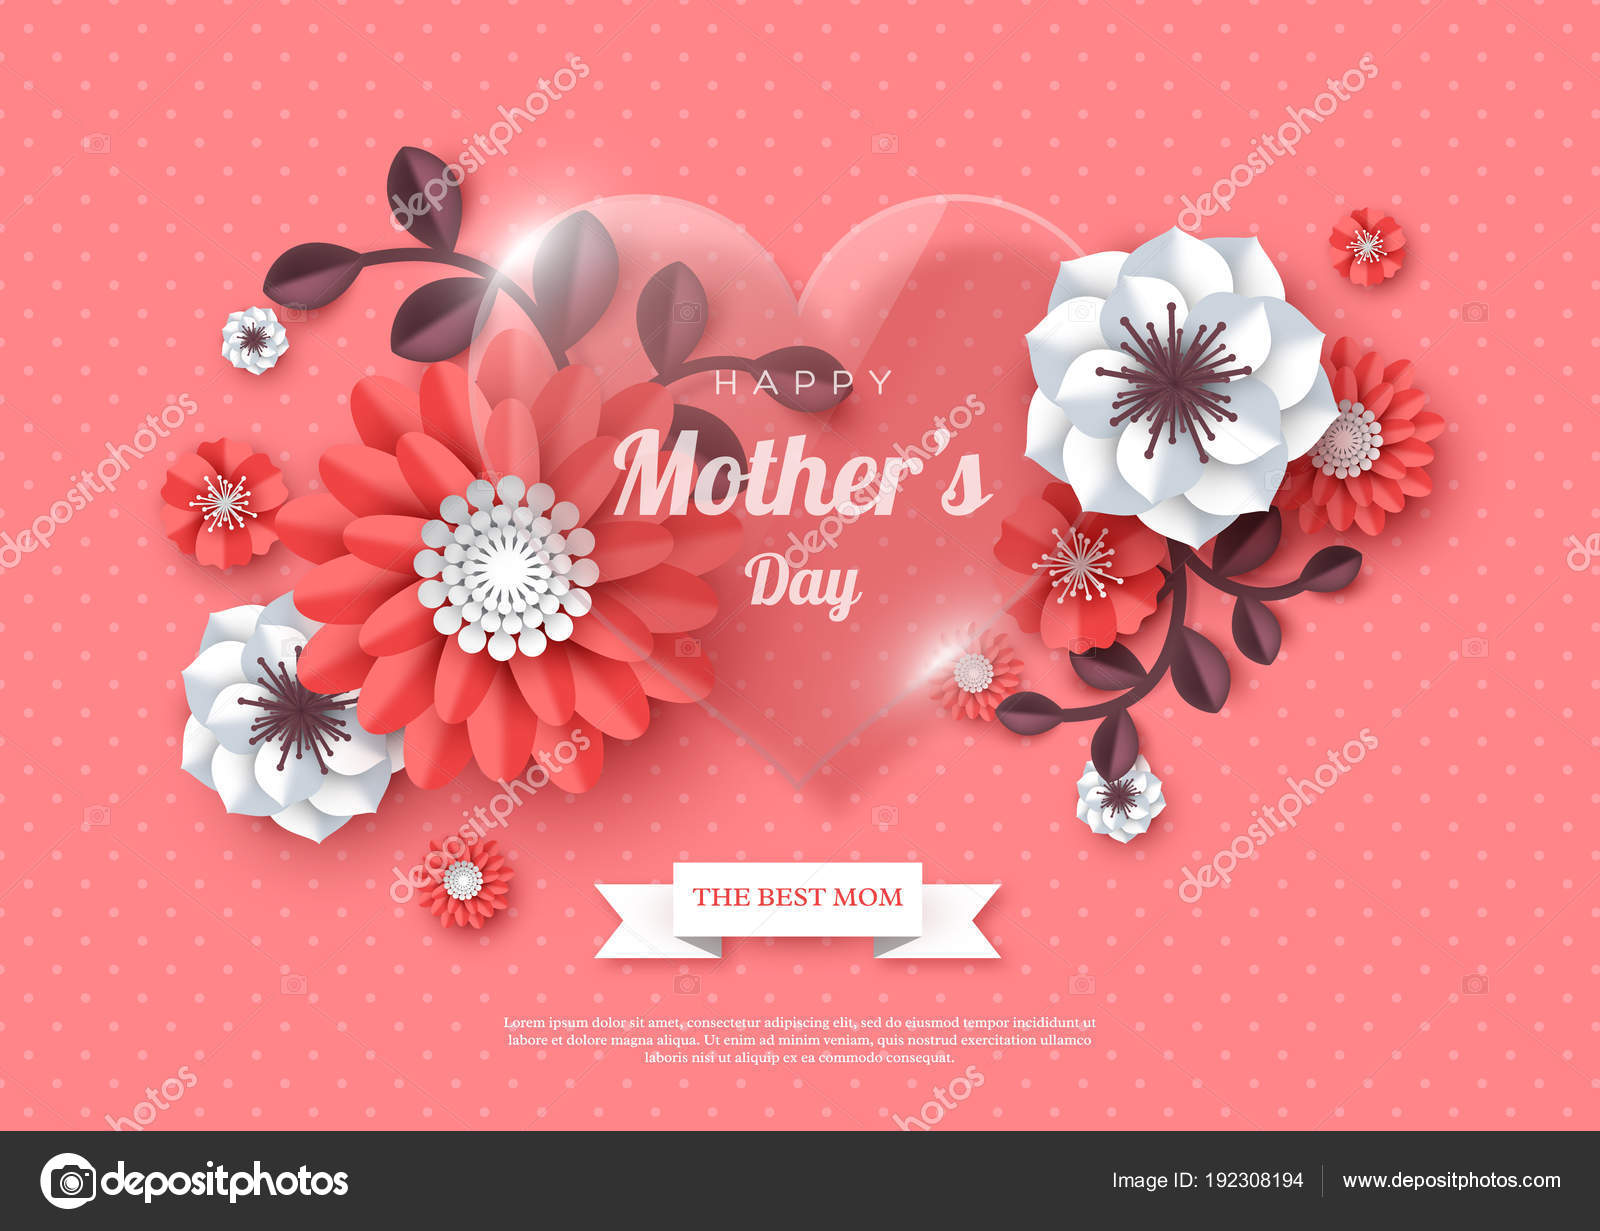 Happy mothers day greeting card paper cut flowers with glossy heart happy mothers day greeting card paper cut flowers with glossy heart holiday background m4hsunfo Image collections